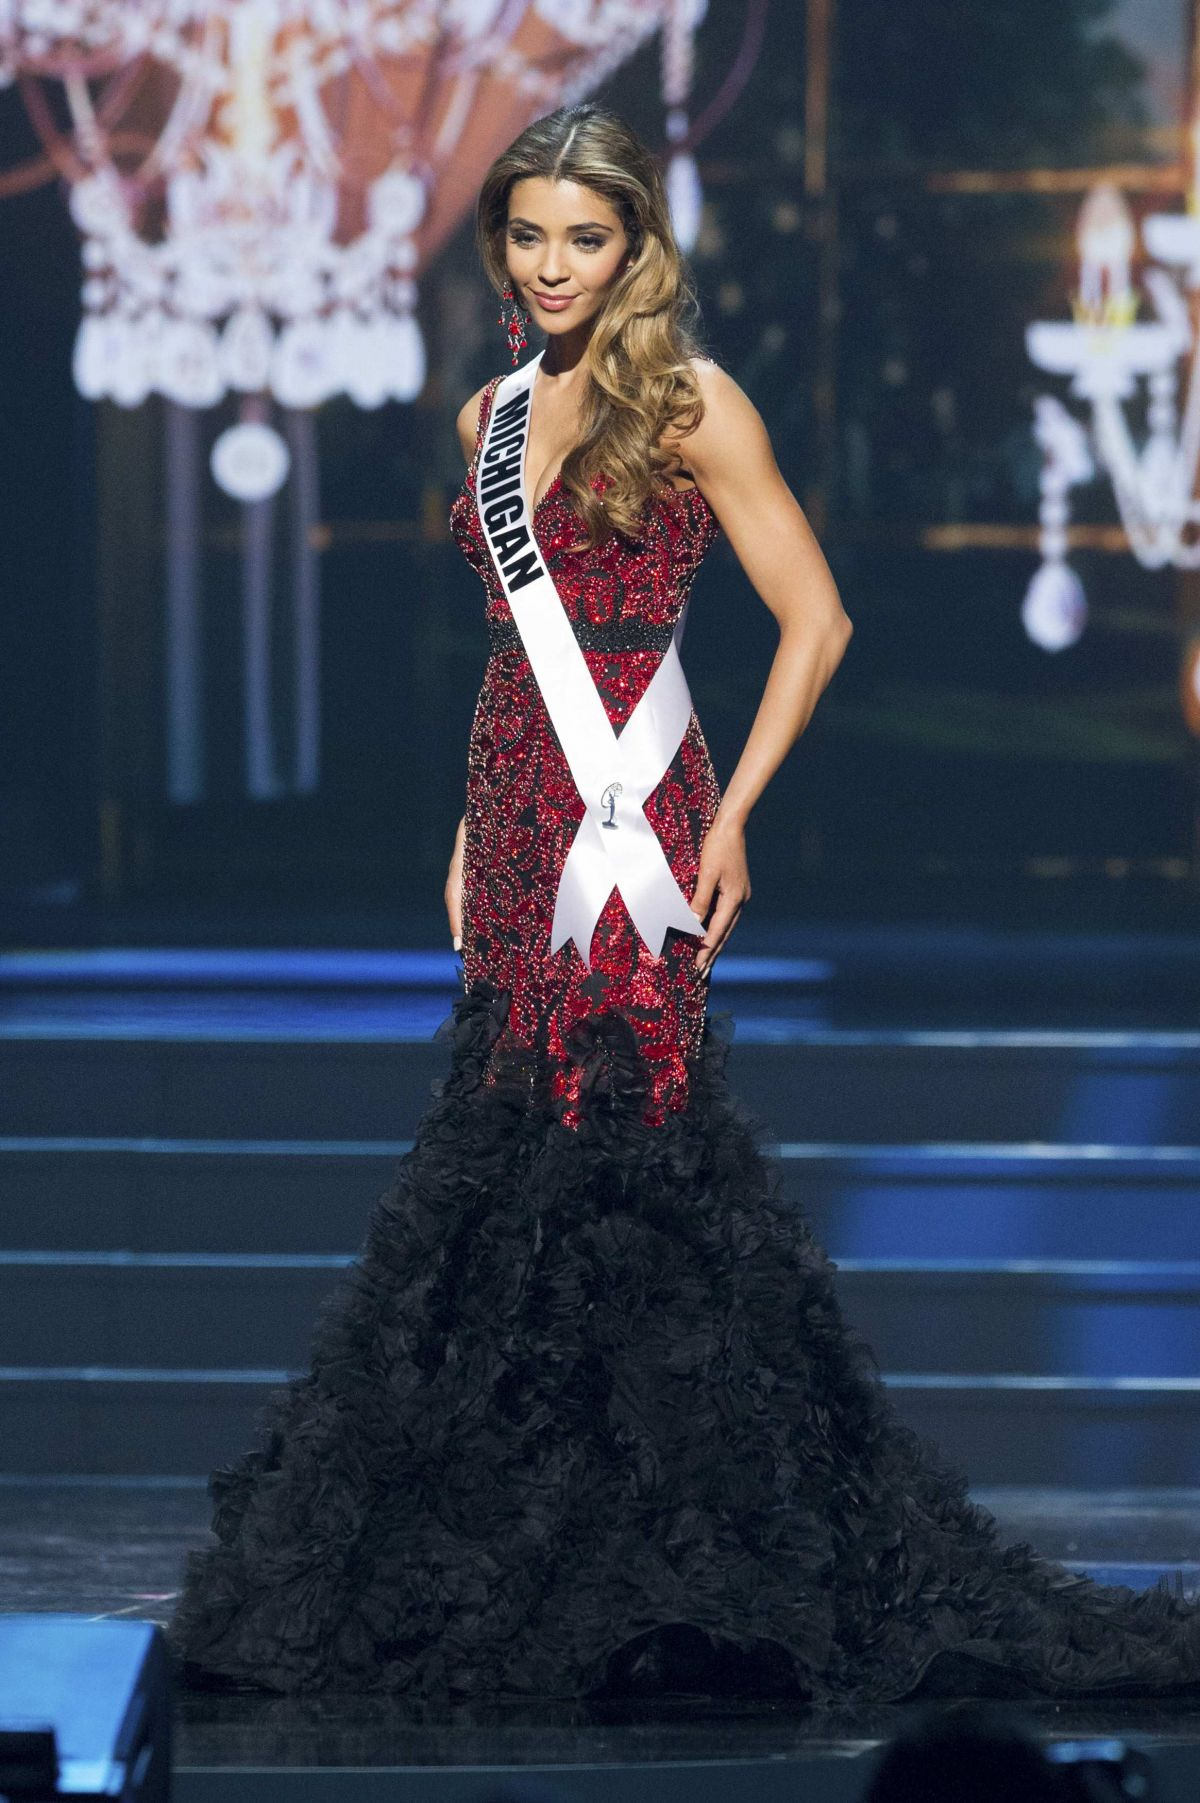 ELIZABETH IVEZAJ at Miss USA 2014 Preliminary Competition